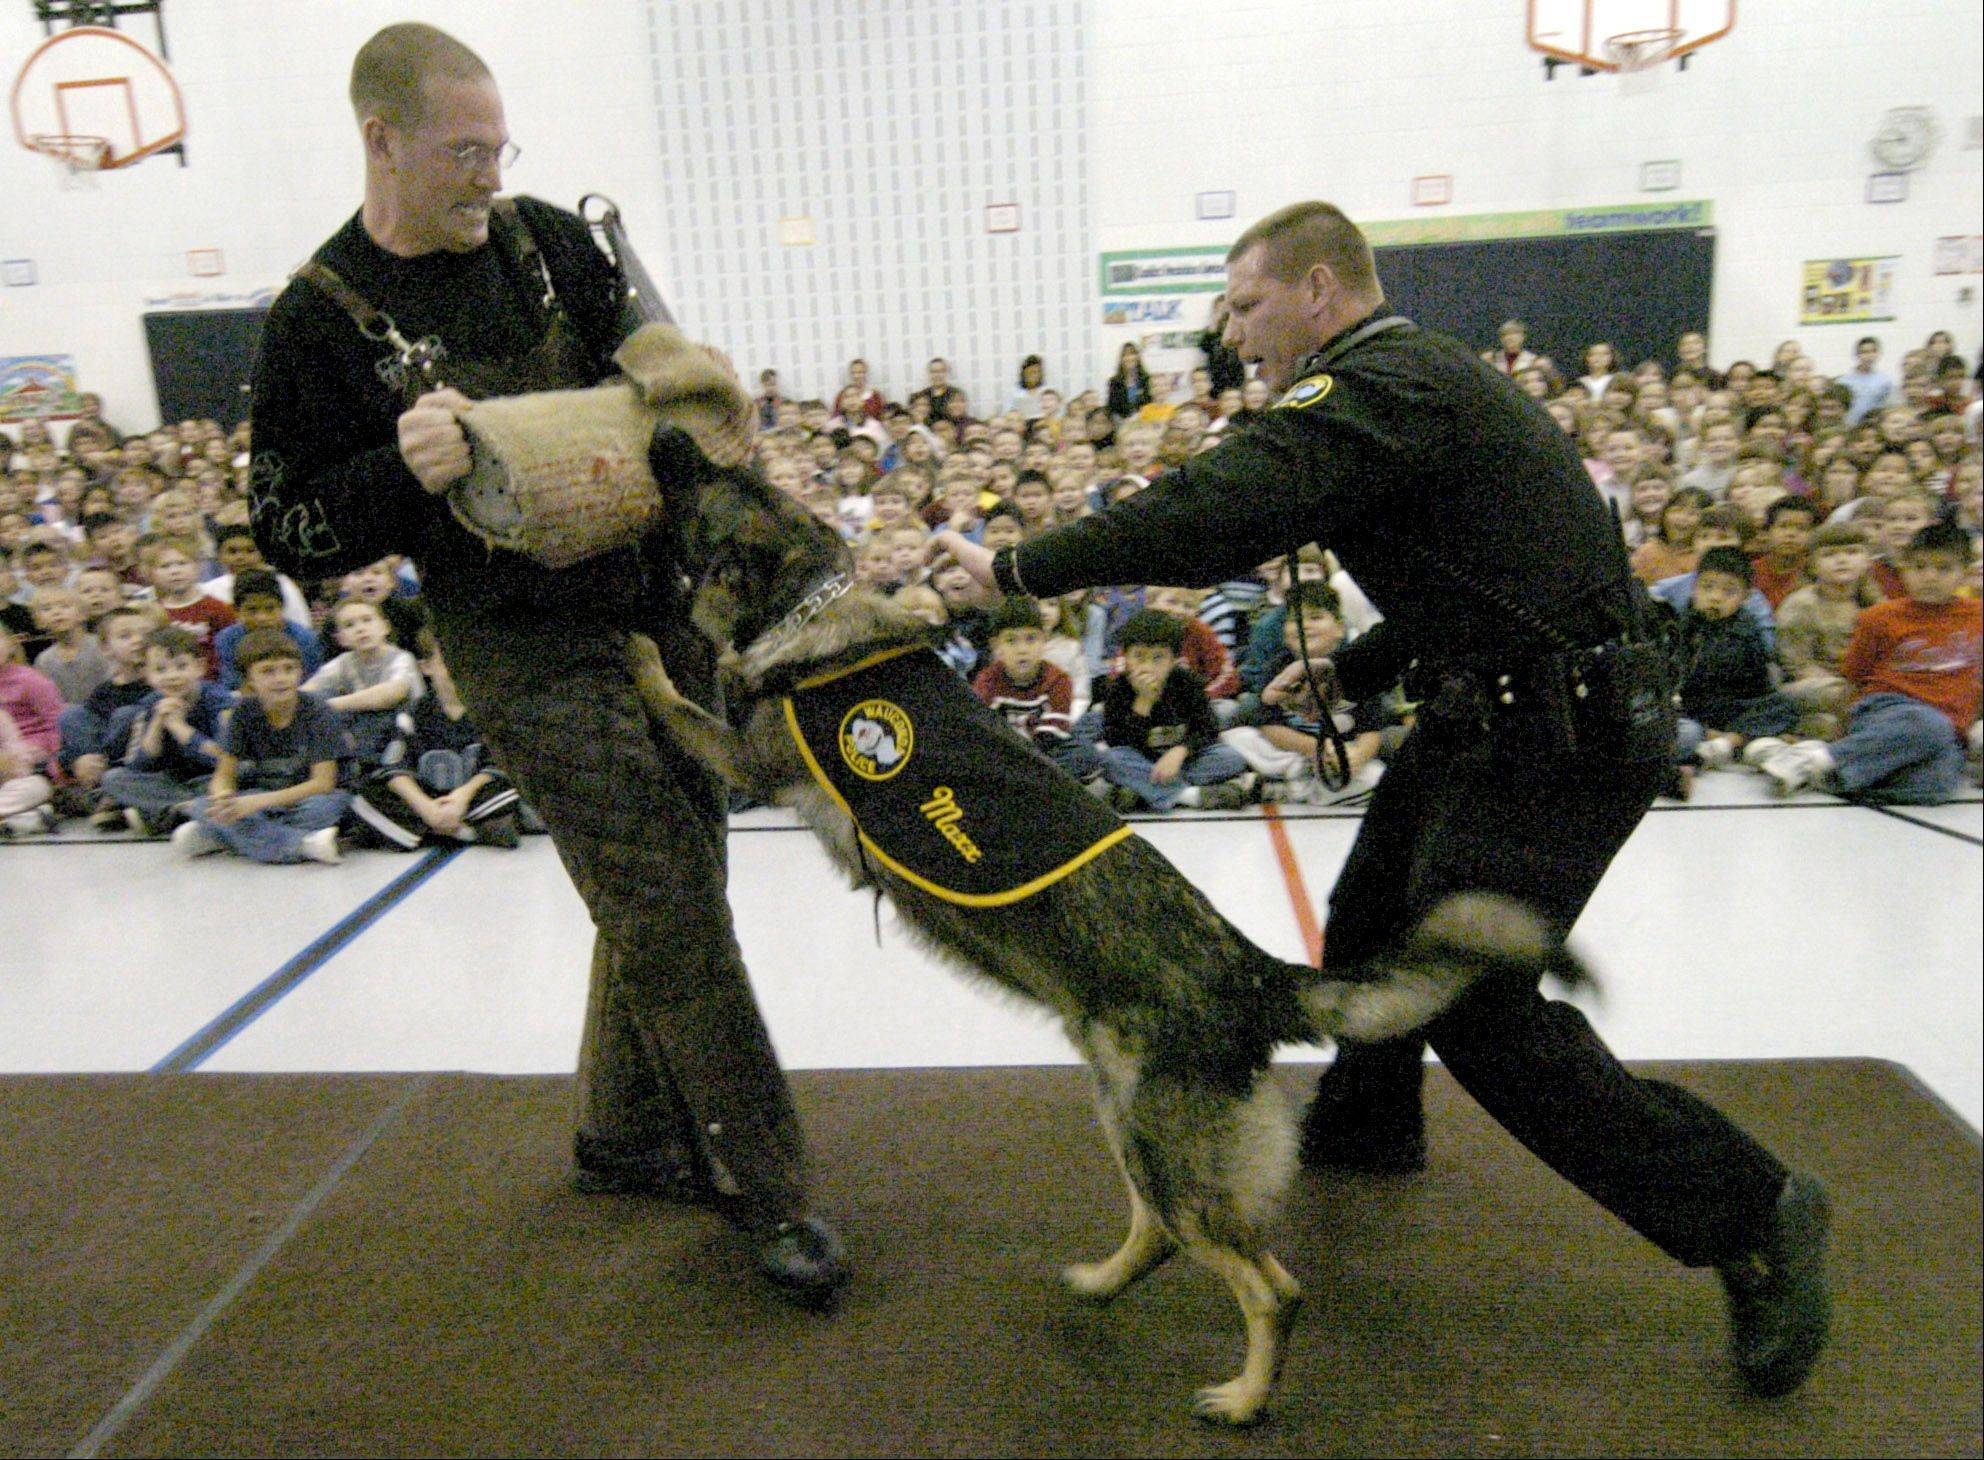 Wauconda's police dog, Maxx, is retiring in 2014. Here he gives a demonstration at a local school with his partner, Sgt. John Combs.